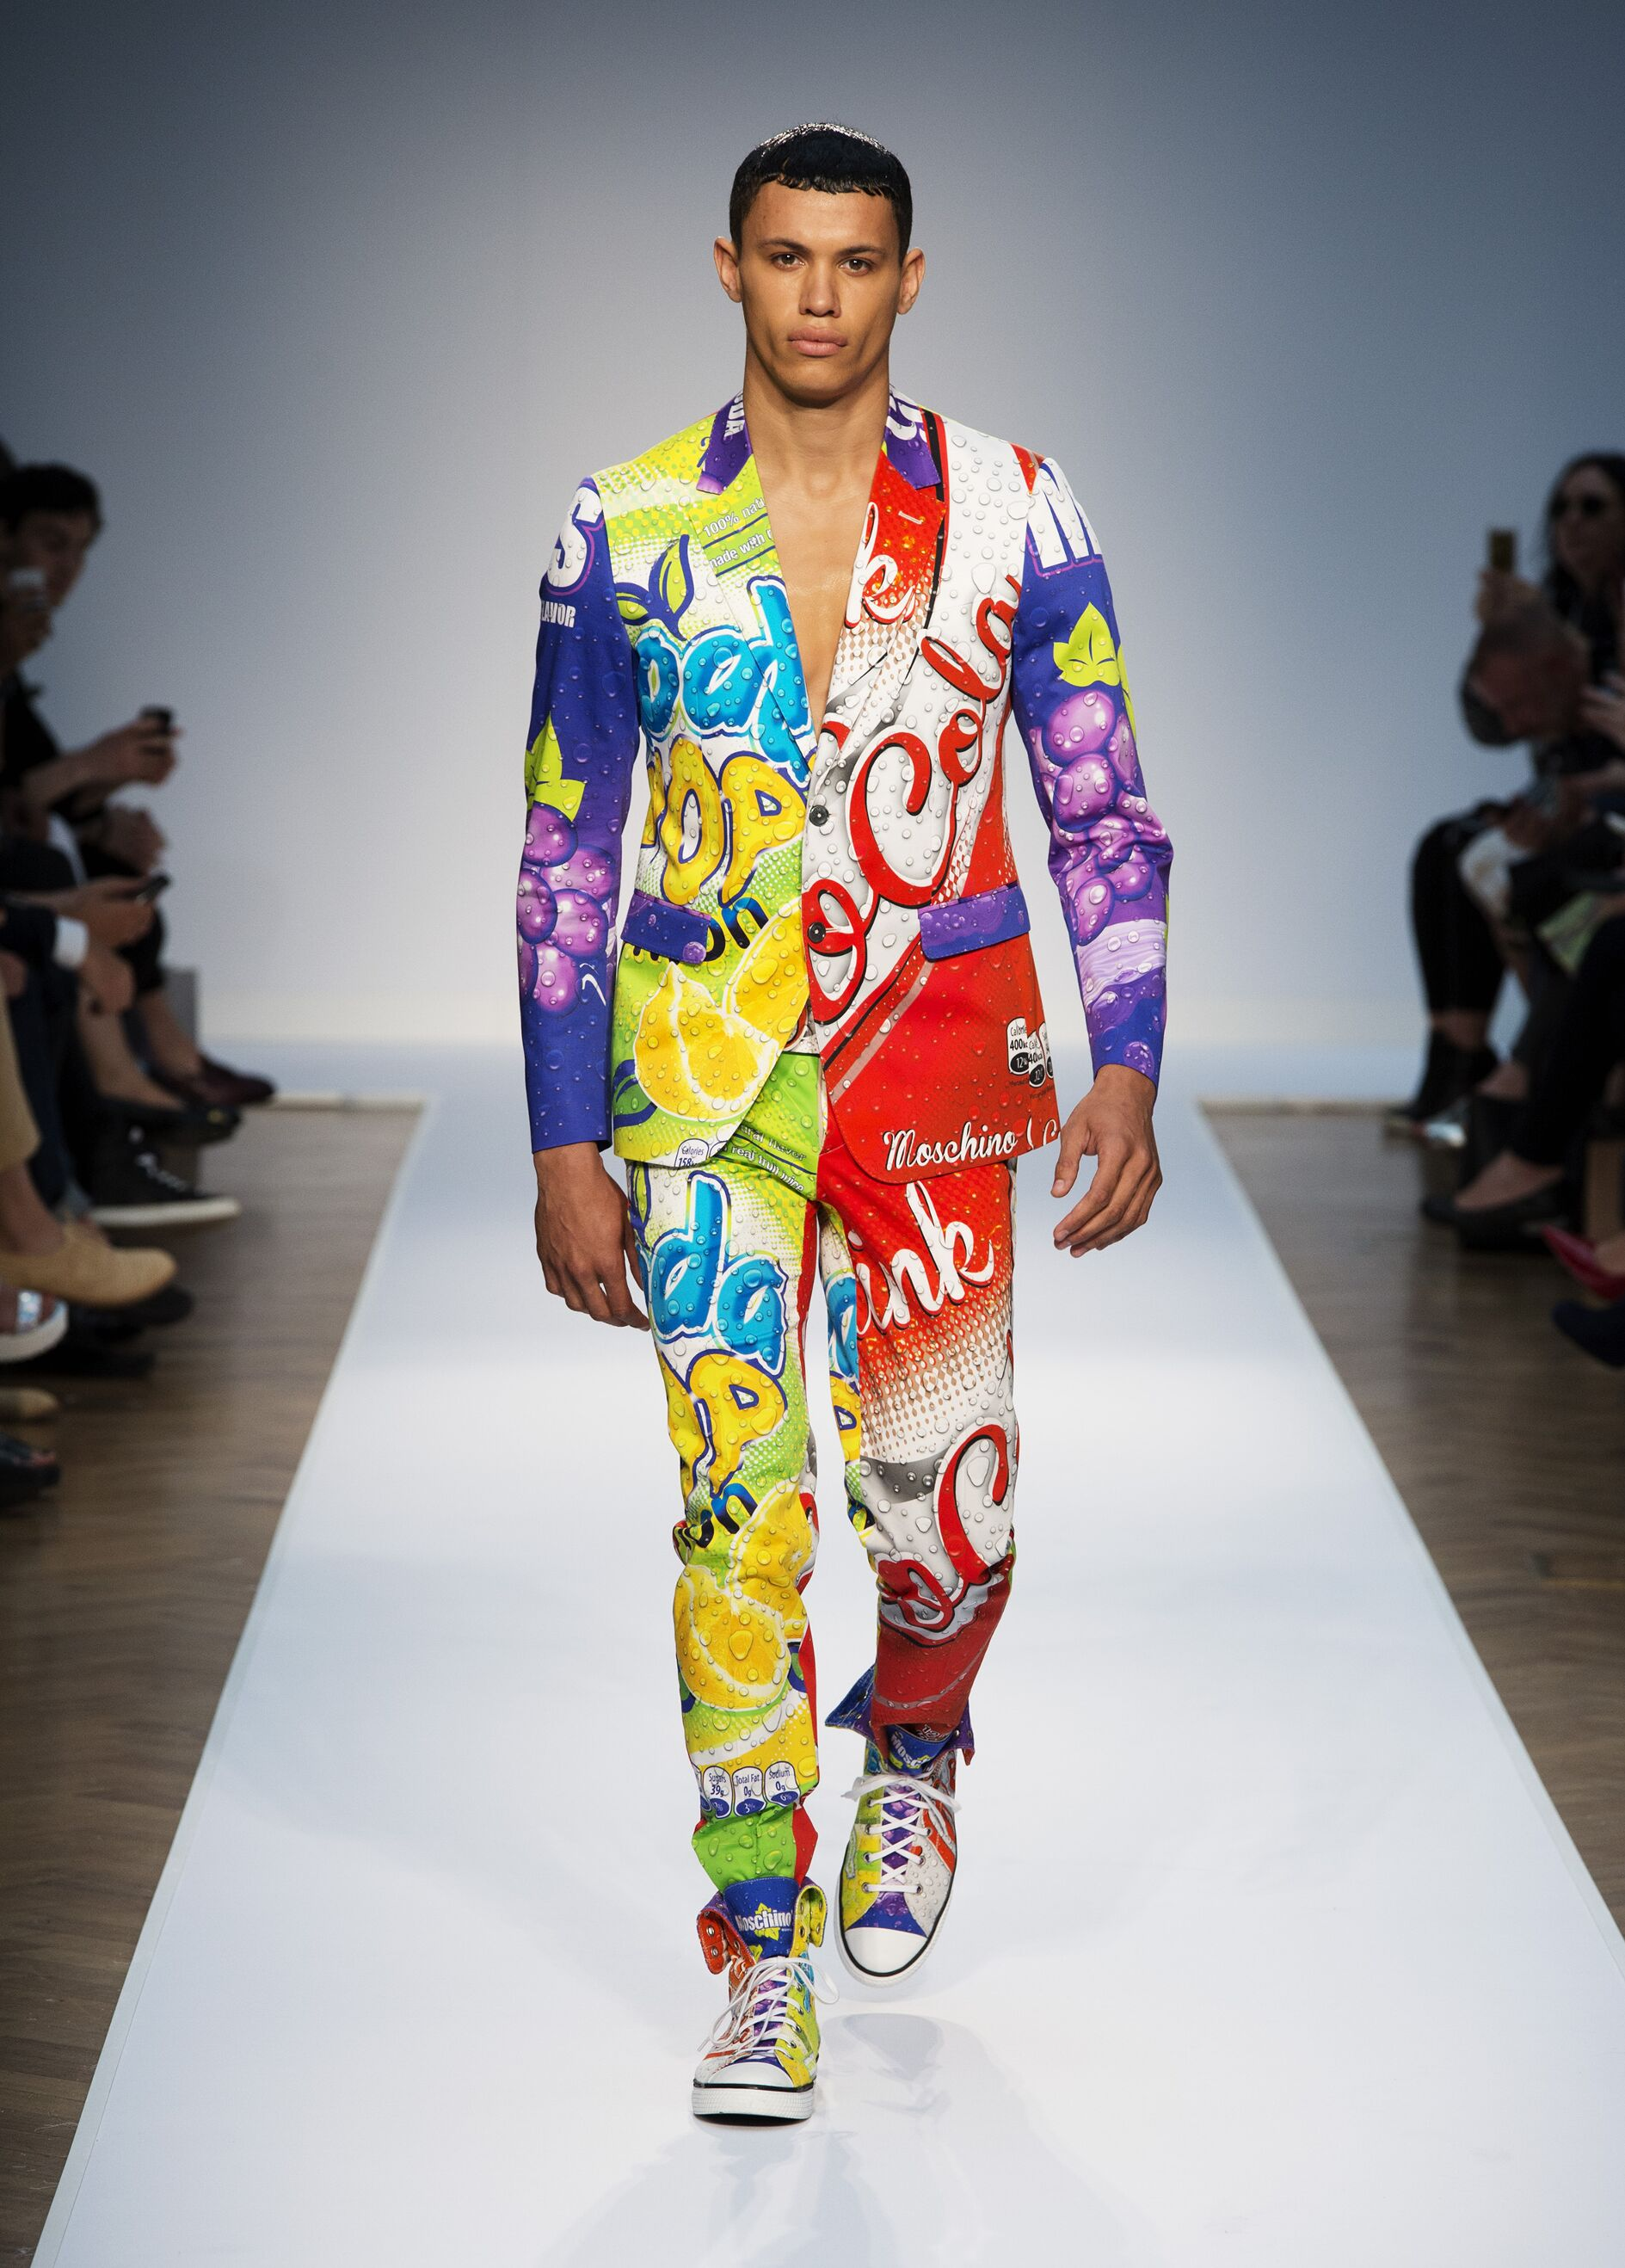 Moschino Man London Fashion Week